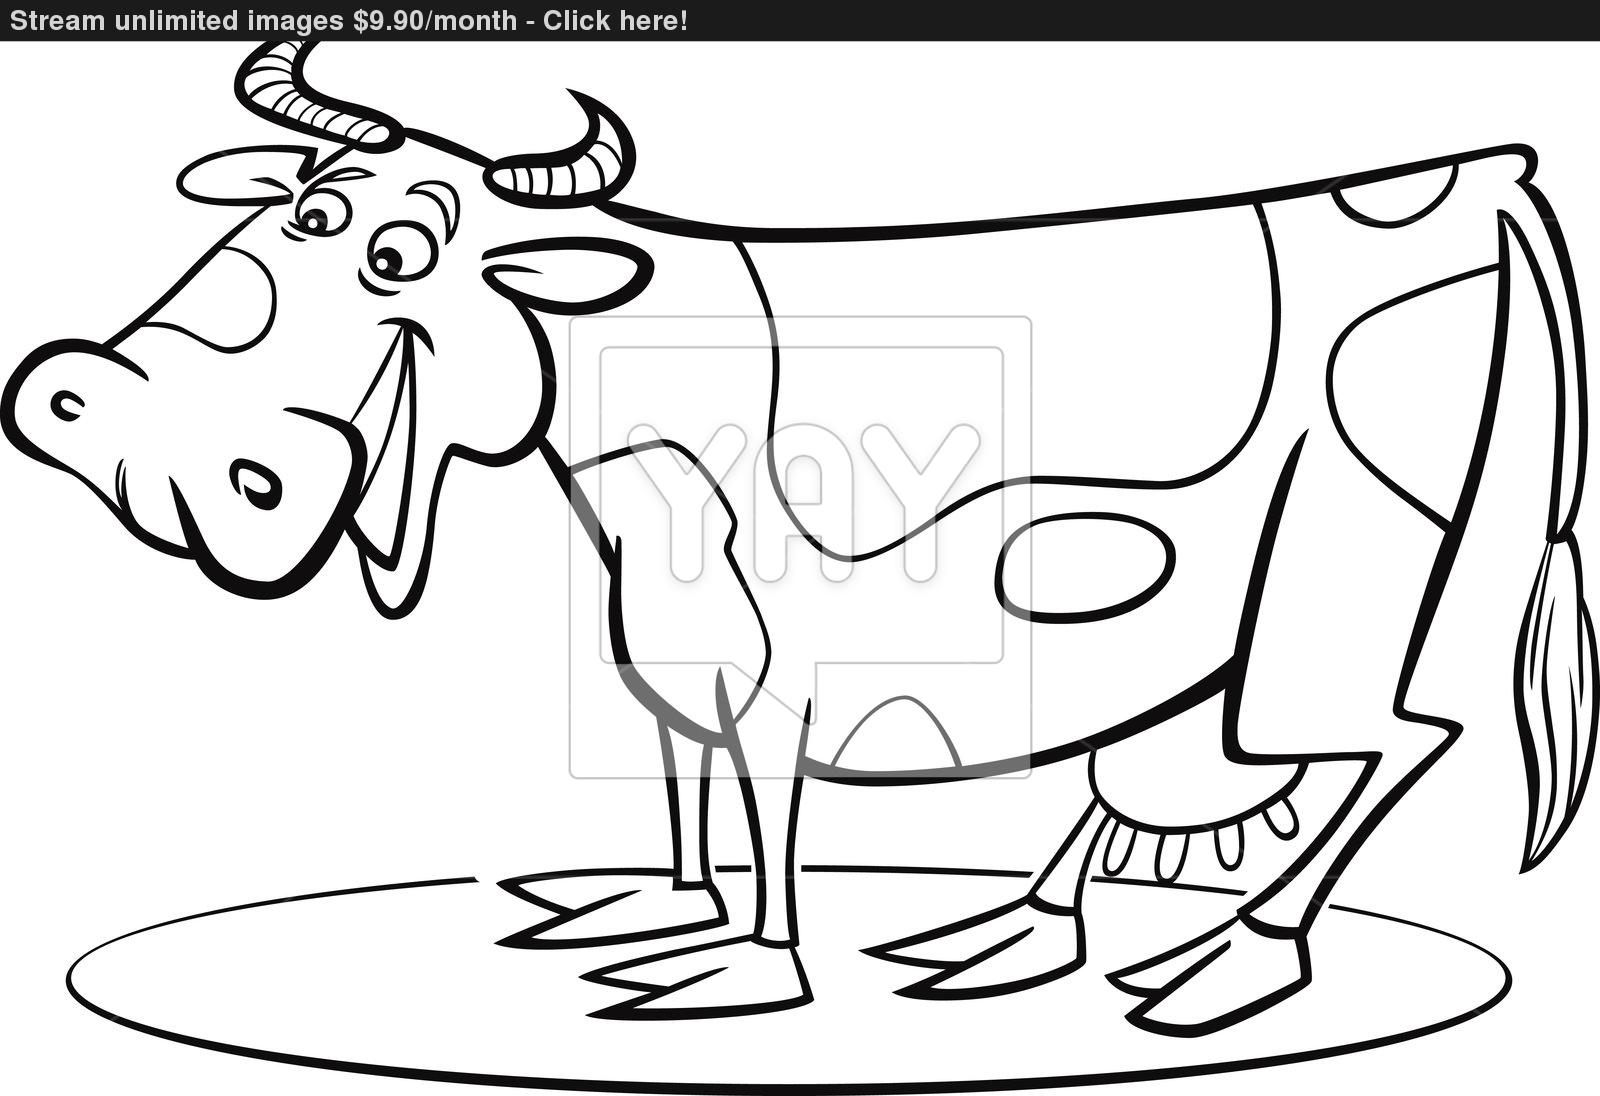 Cow Drawing Cartoon at GetDrawings.com | Free for personal use Cow ...